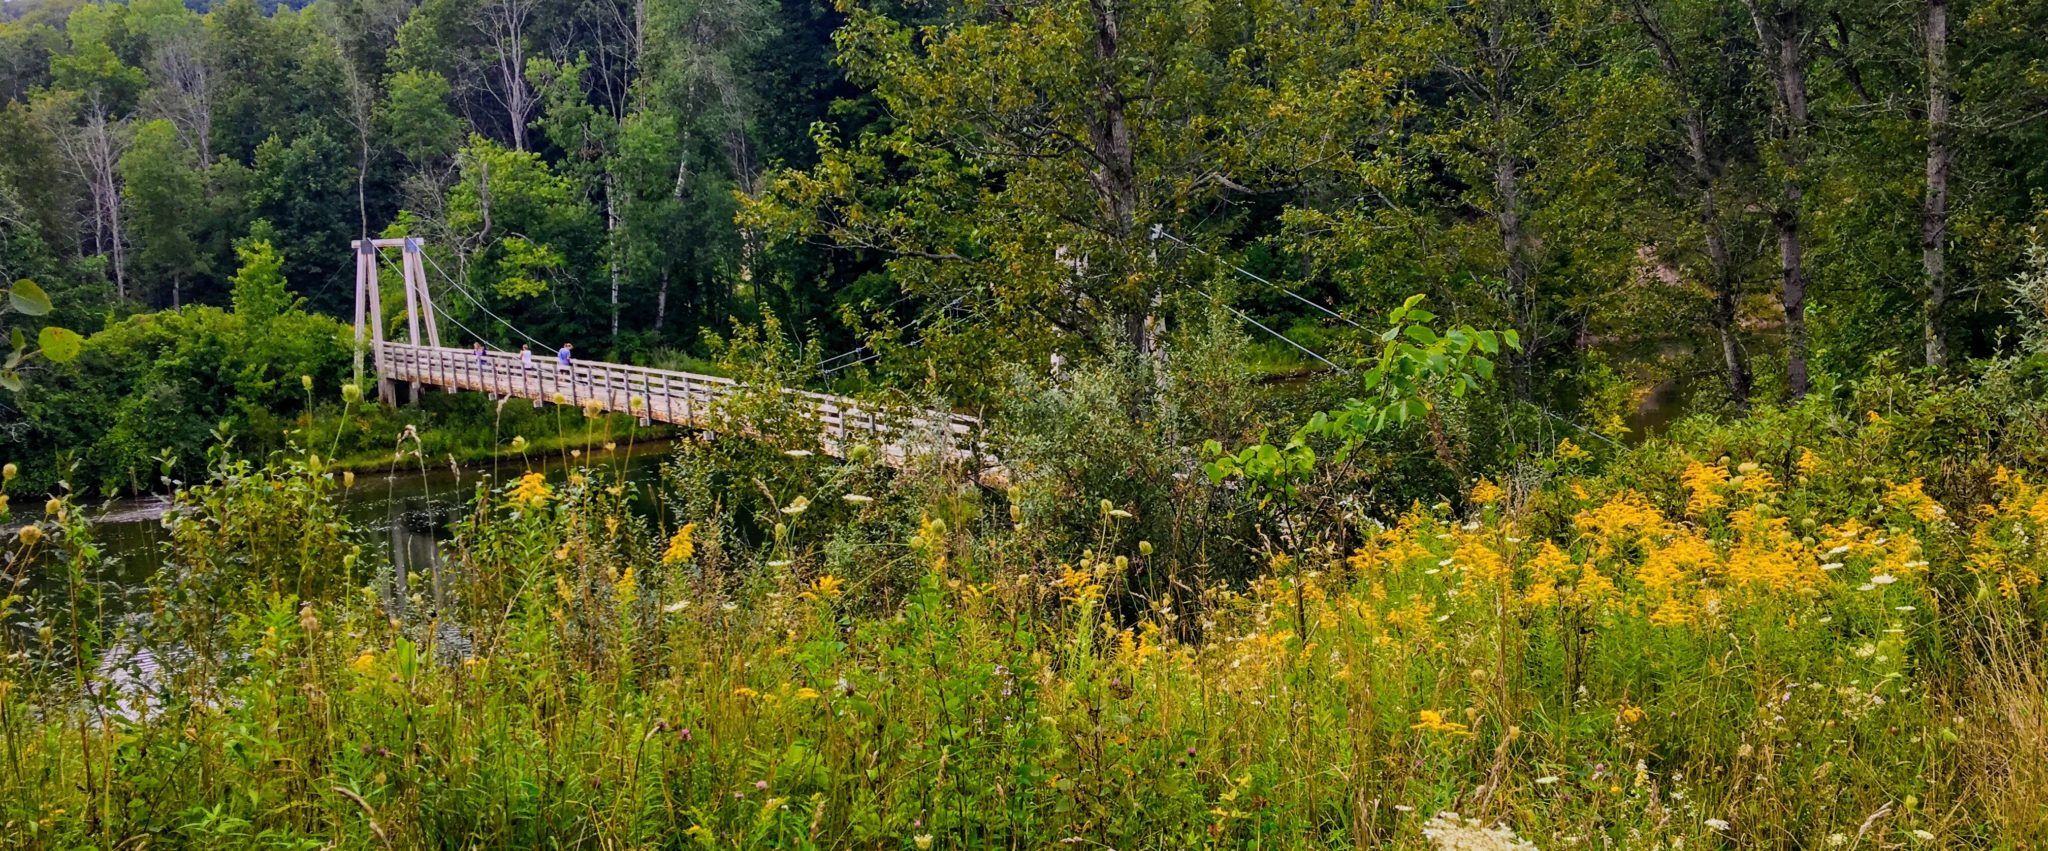 Suspension Bridge Near Seaton Creek Campground - Manistee River Trail